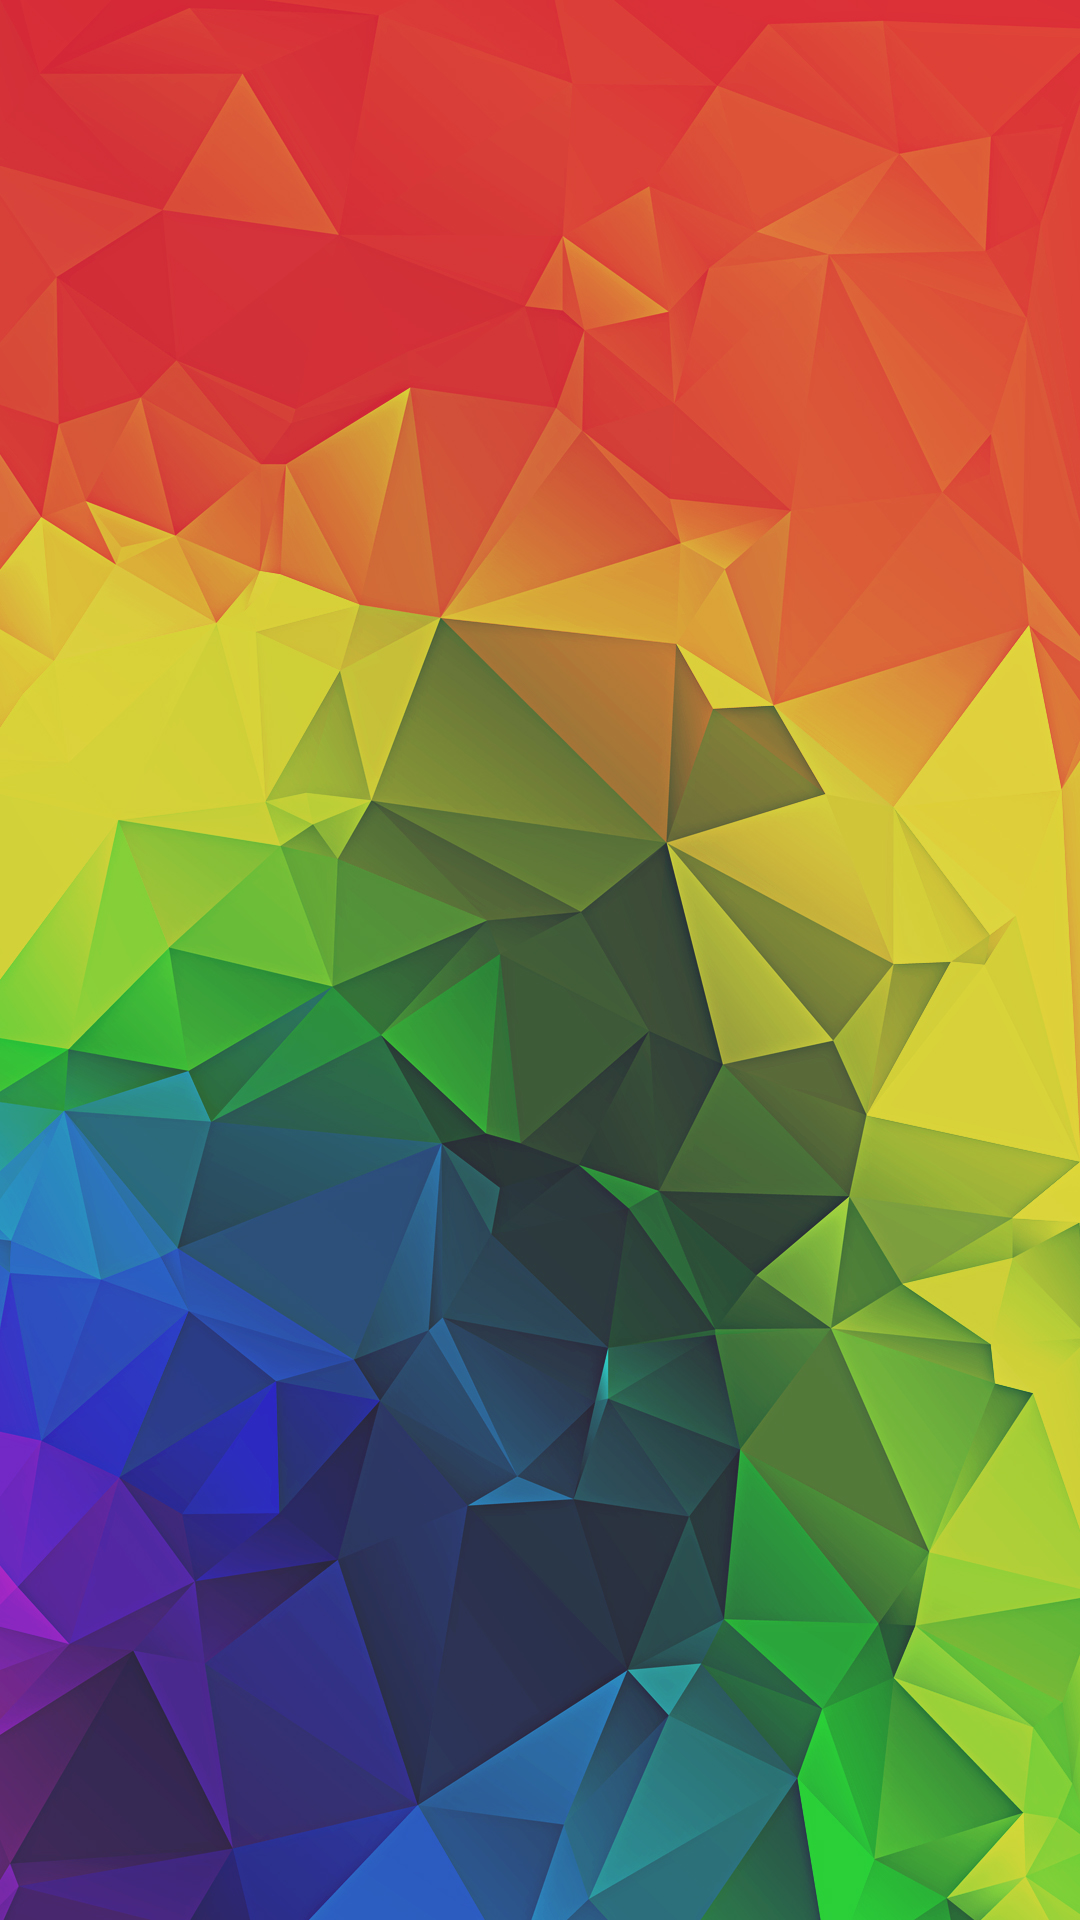 Rainbow Triangles Iphone Wallpapers Iphone Wallpaper